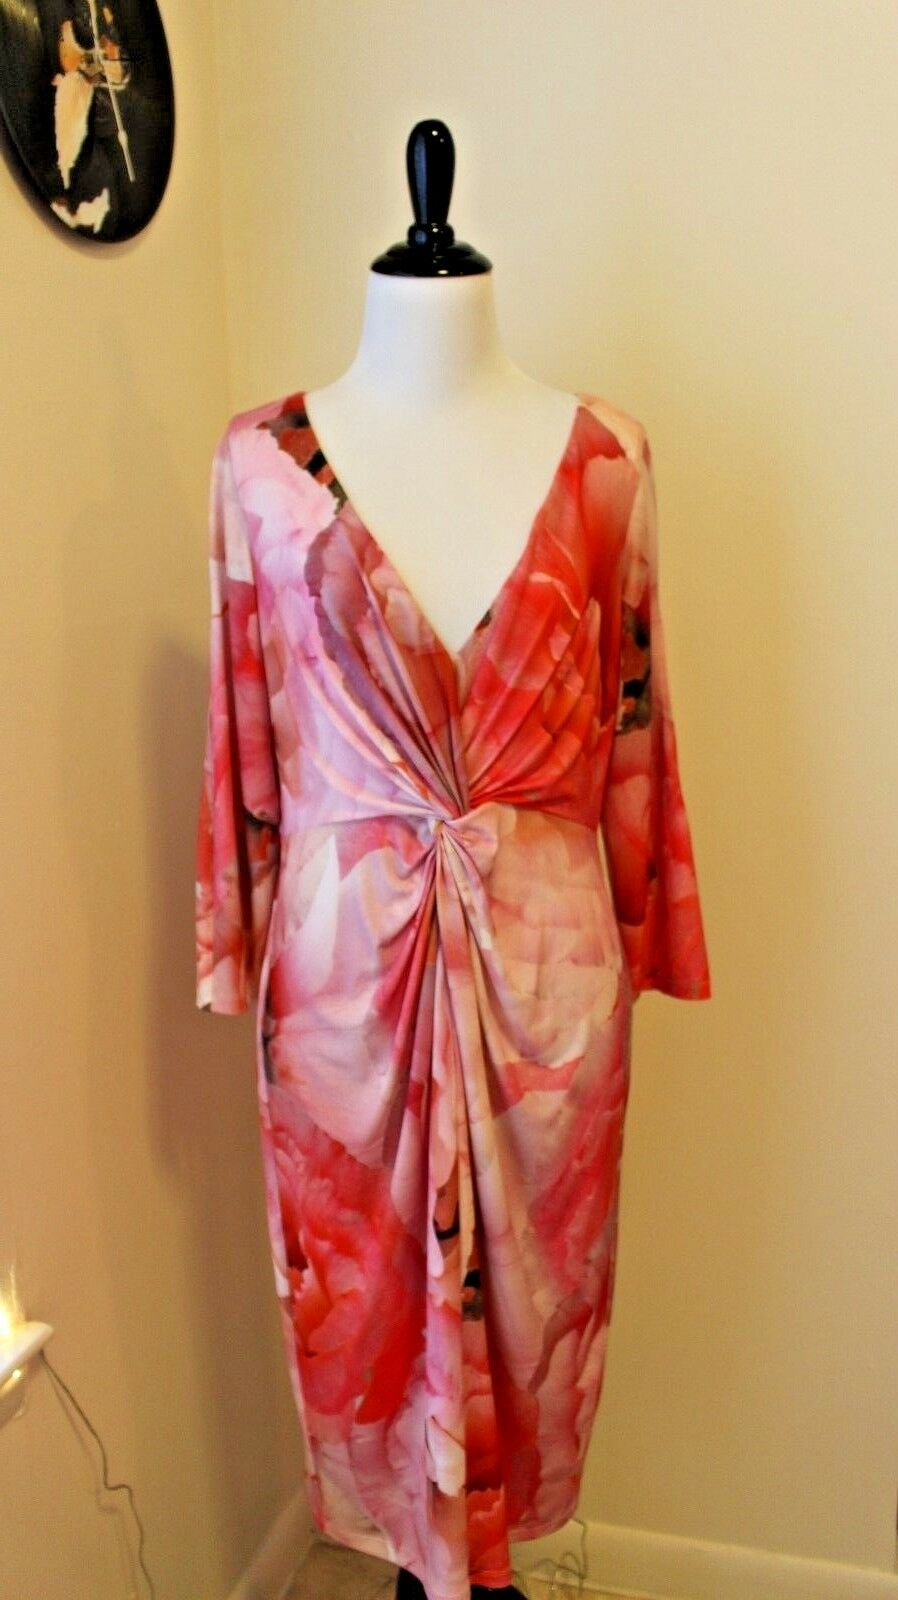 Boston Proper 3 4 Sleeve Dress Ruched Pink Floral Midi Size 12 NEW WITH TAGS